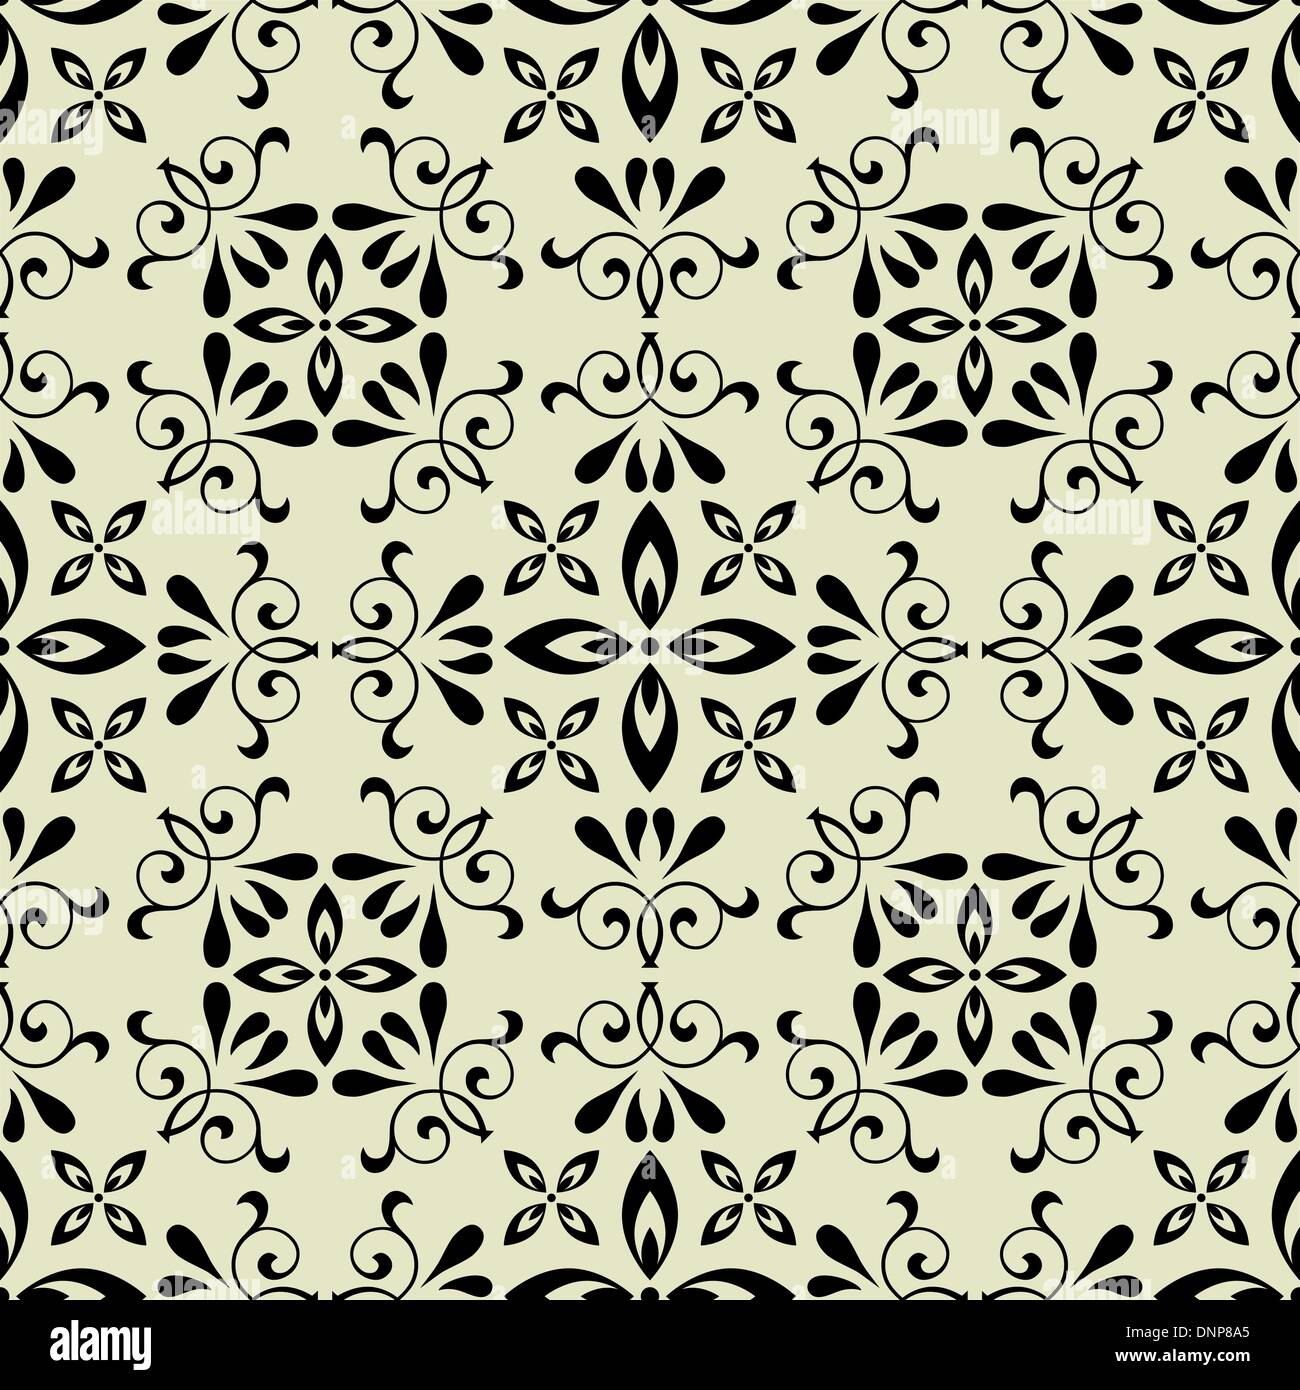 Vettore d'arte seamless pattern vintage background Immagini Stock